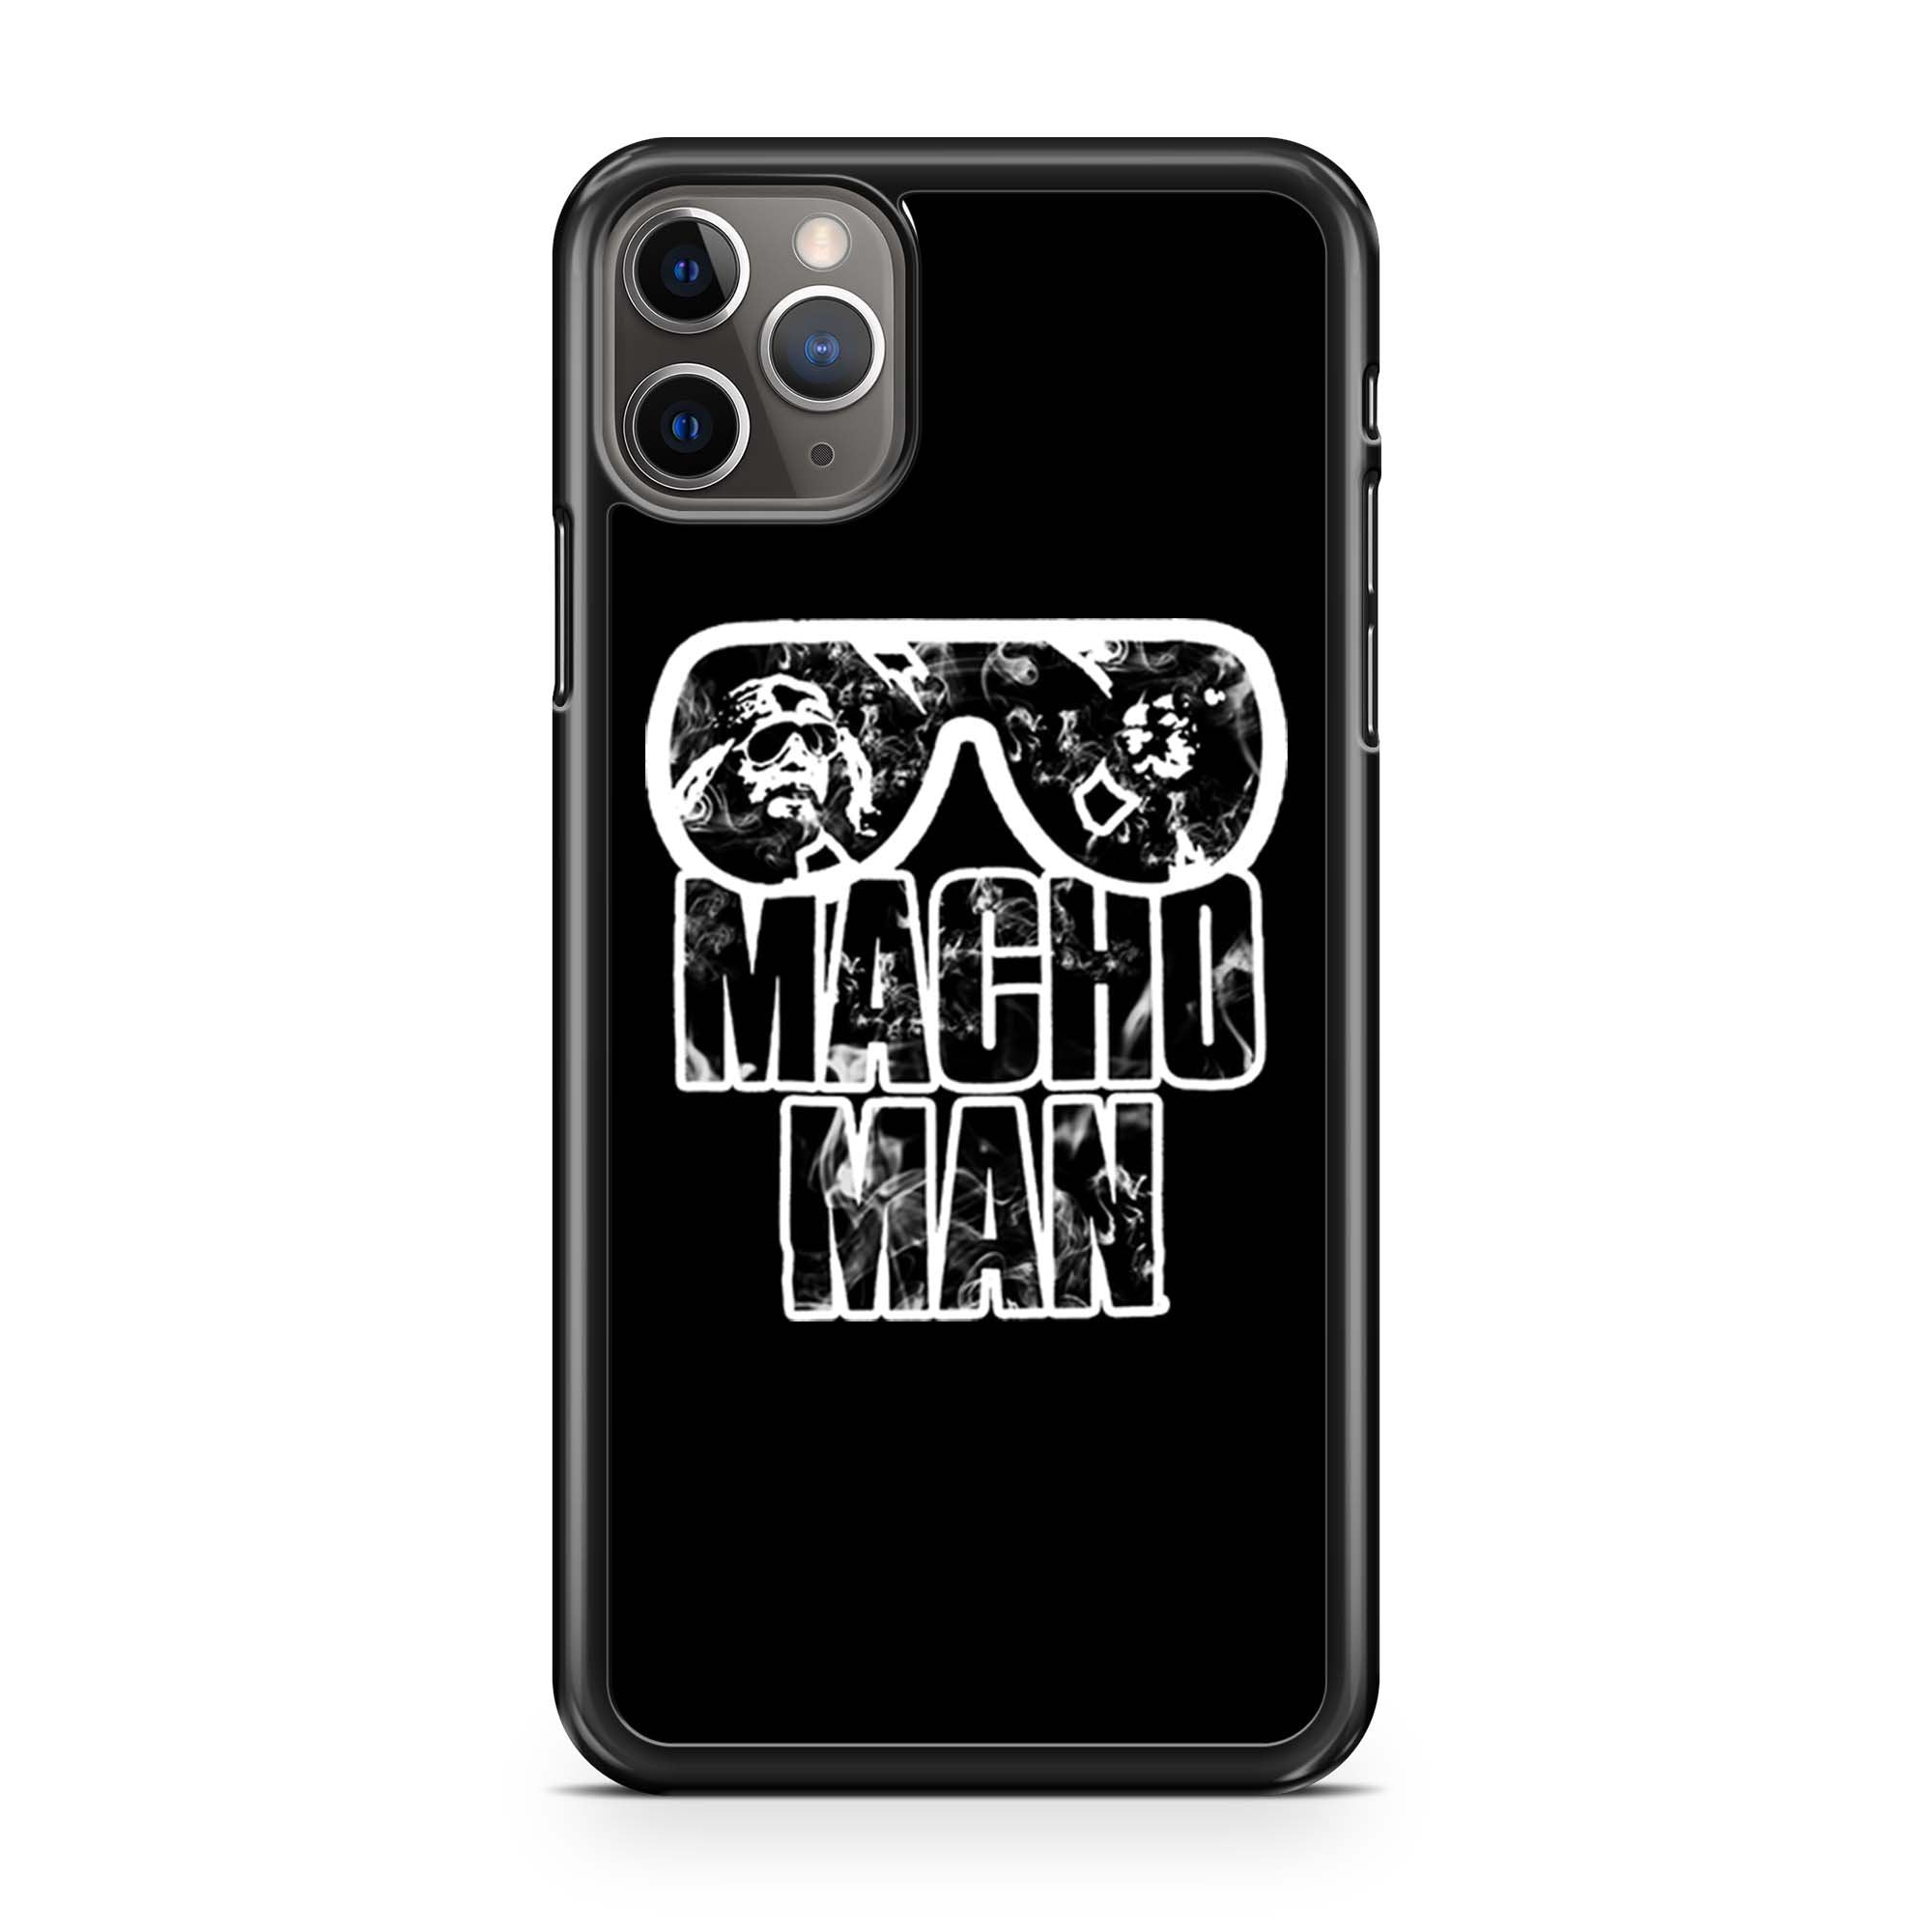 Macho Man iPhone 11 Pro Max Case